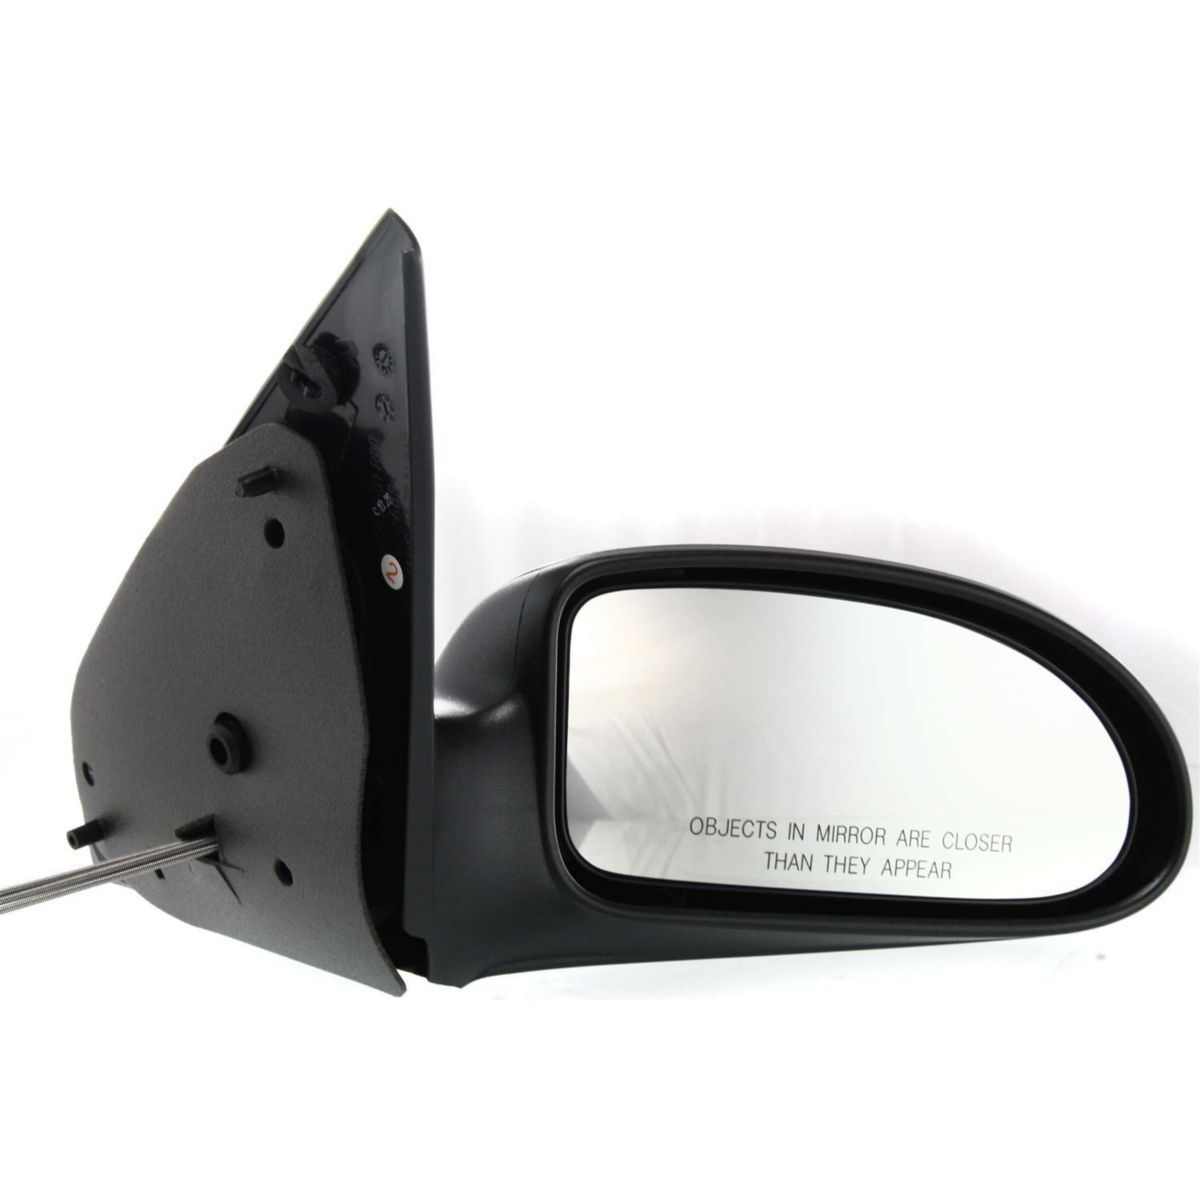 00-02 Ford Focus Manual Remote Mirror RH Passenger Right Side (To 11/28/01)